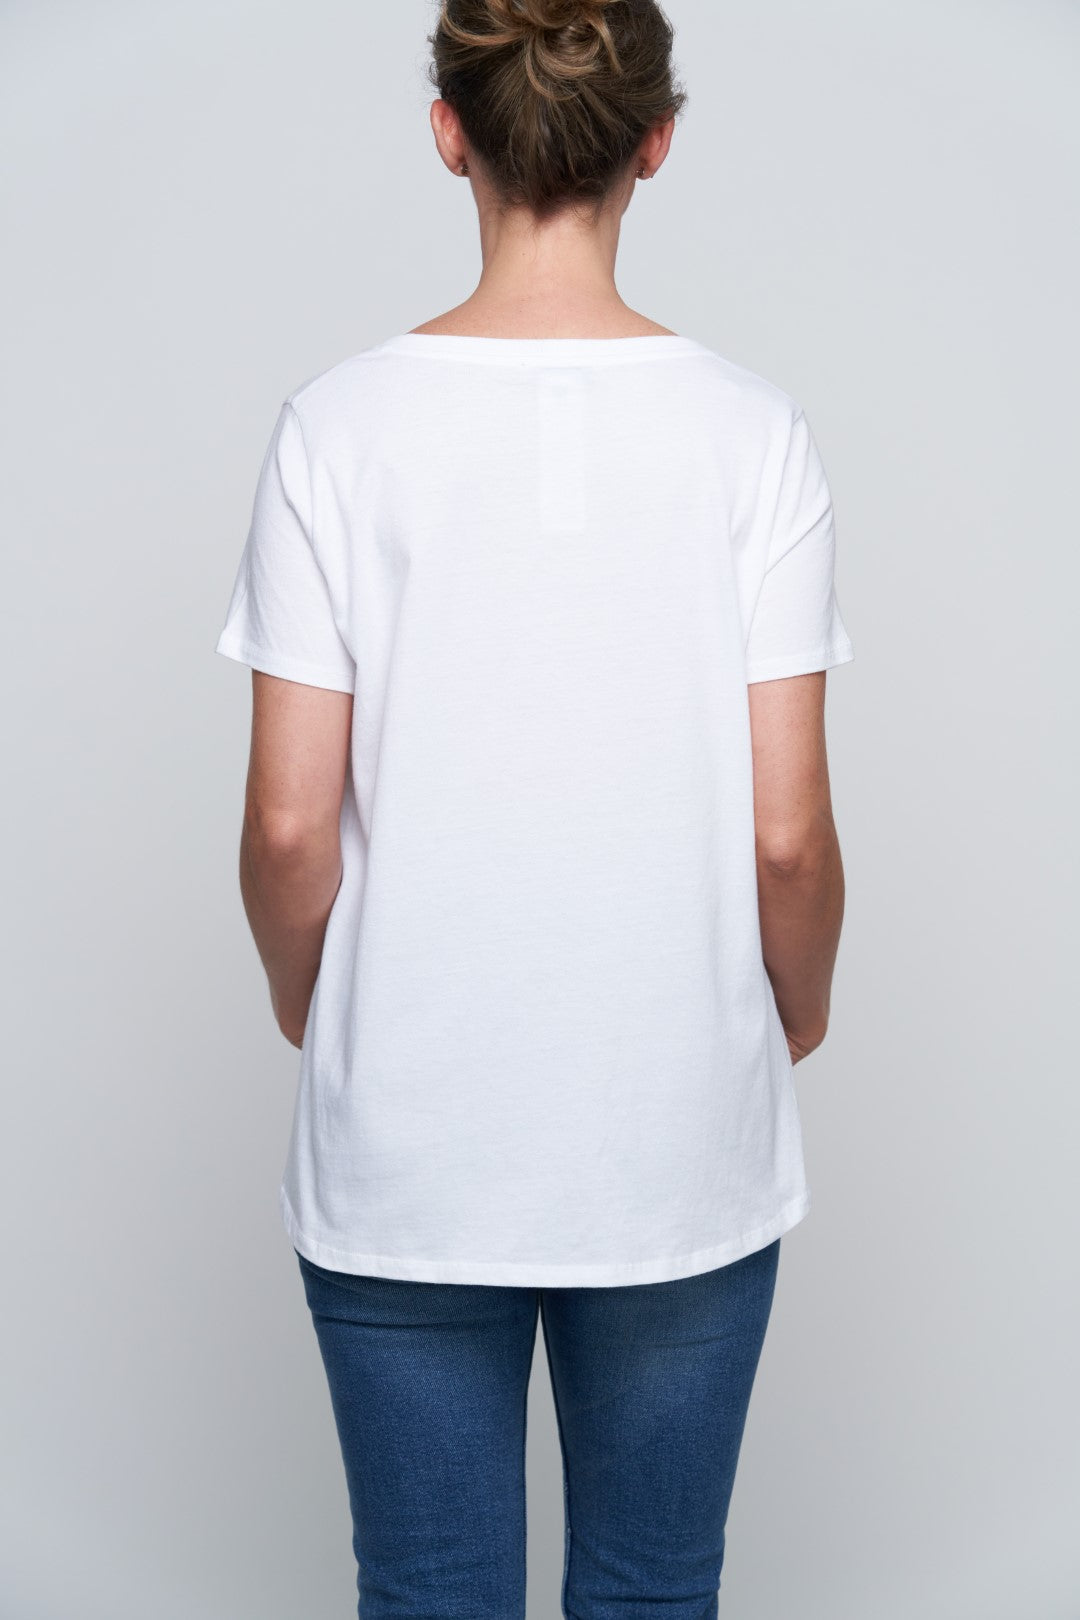 Glendale Cat Pocket Tee - White-5